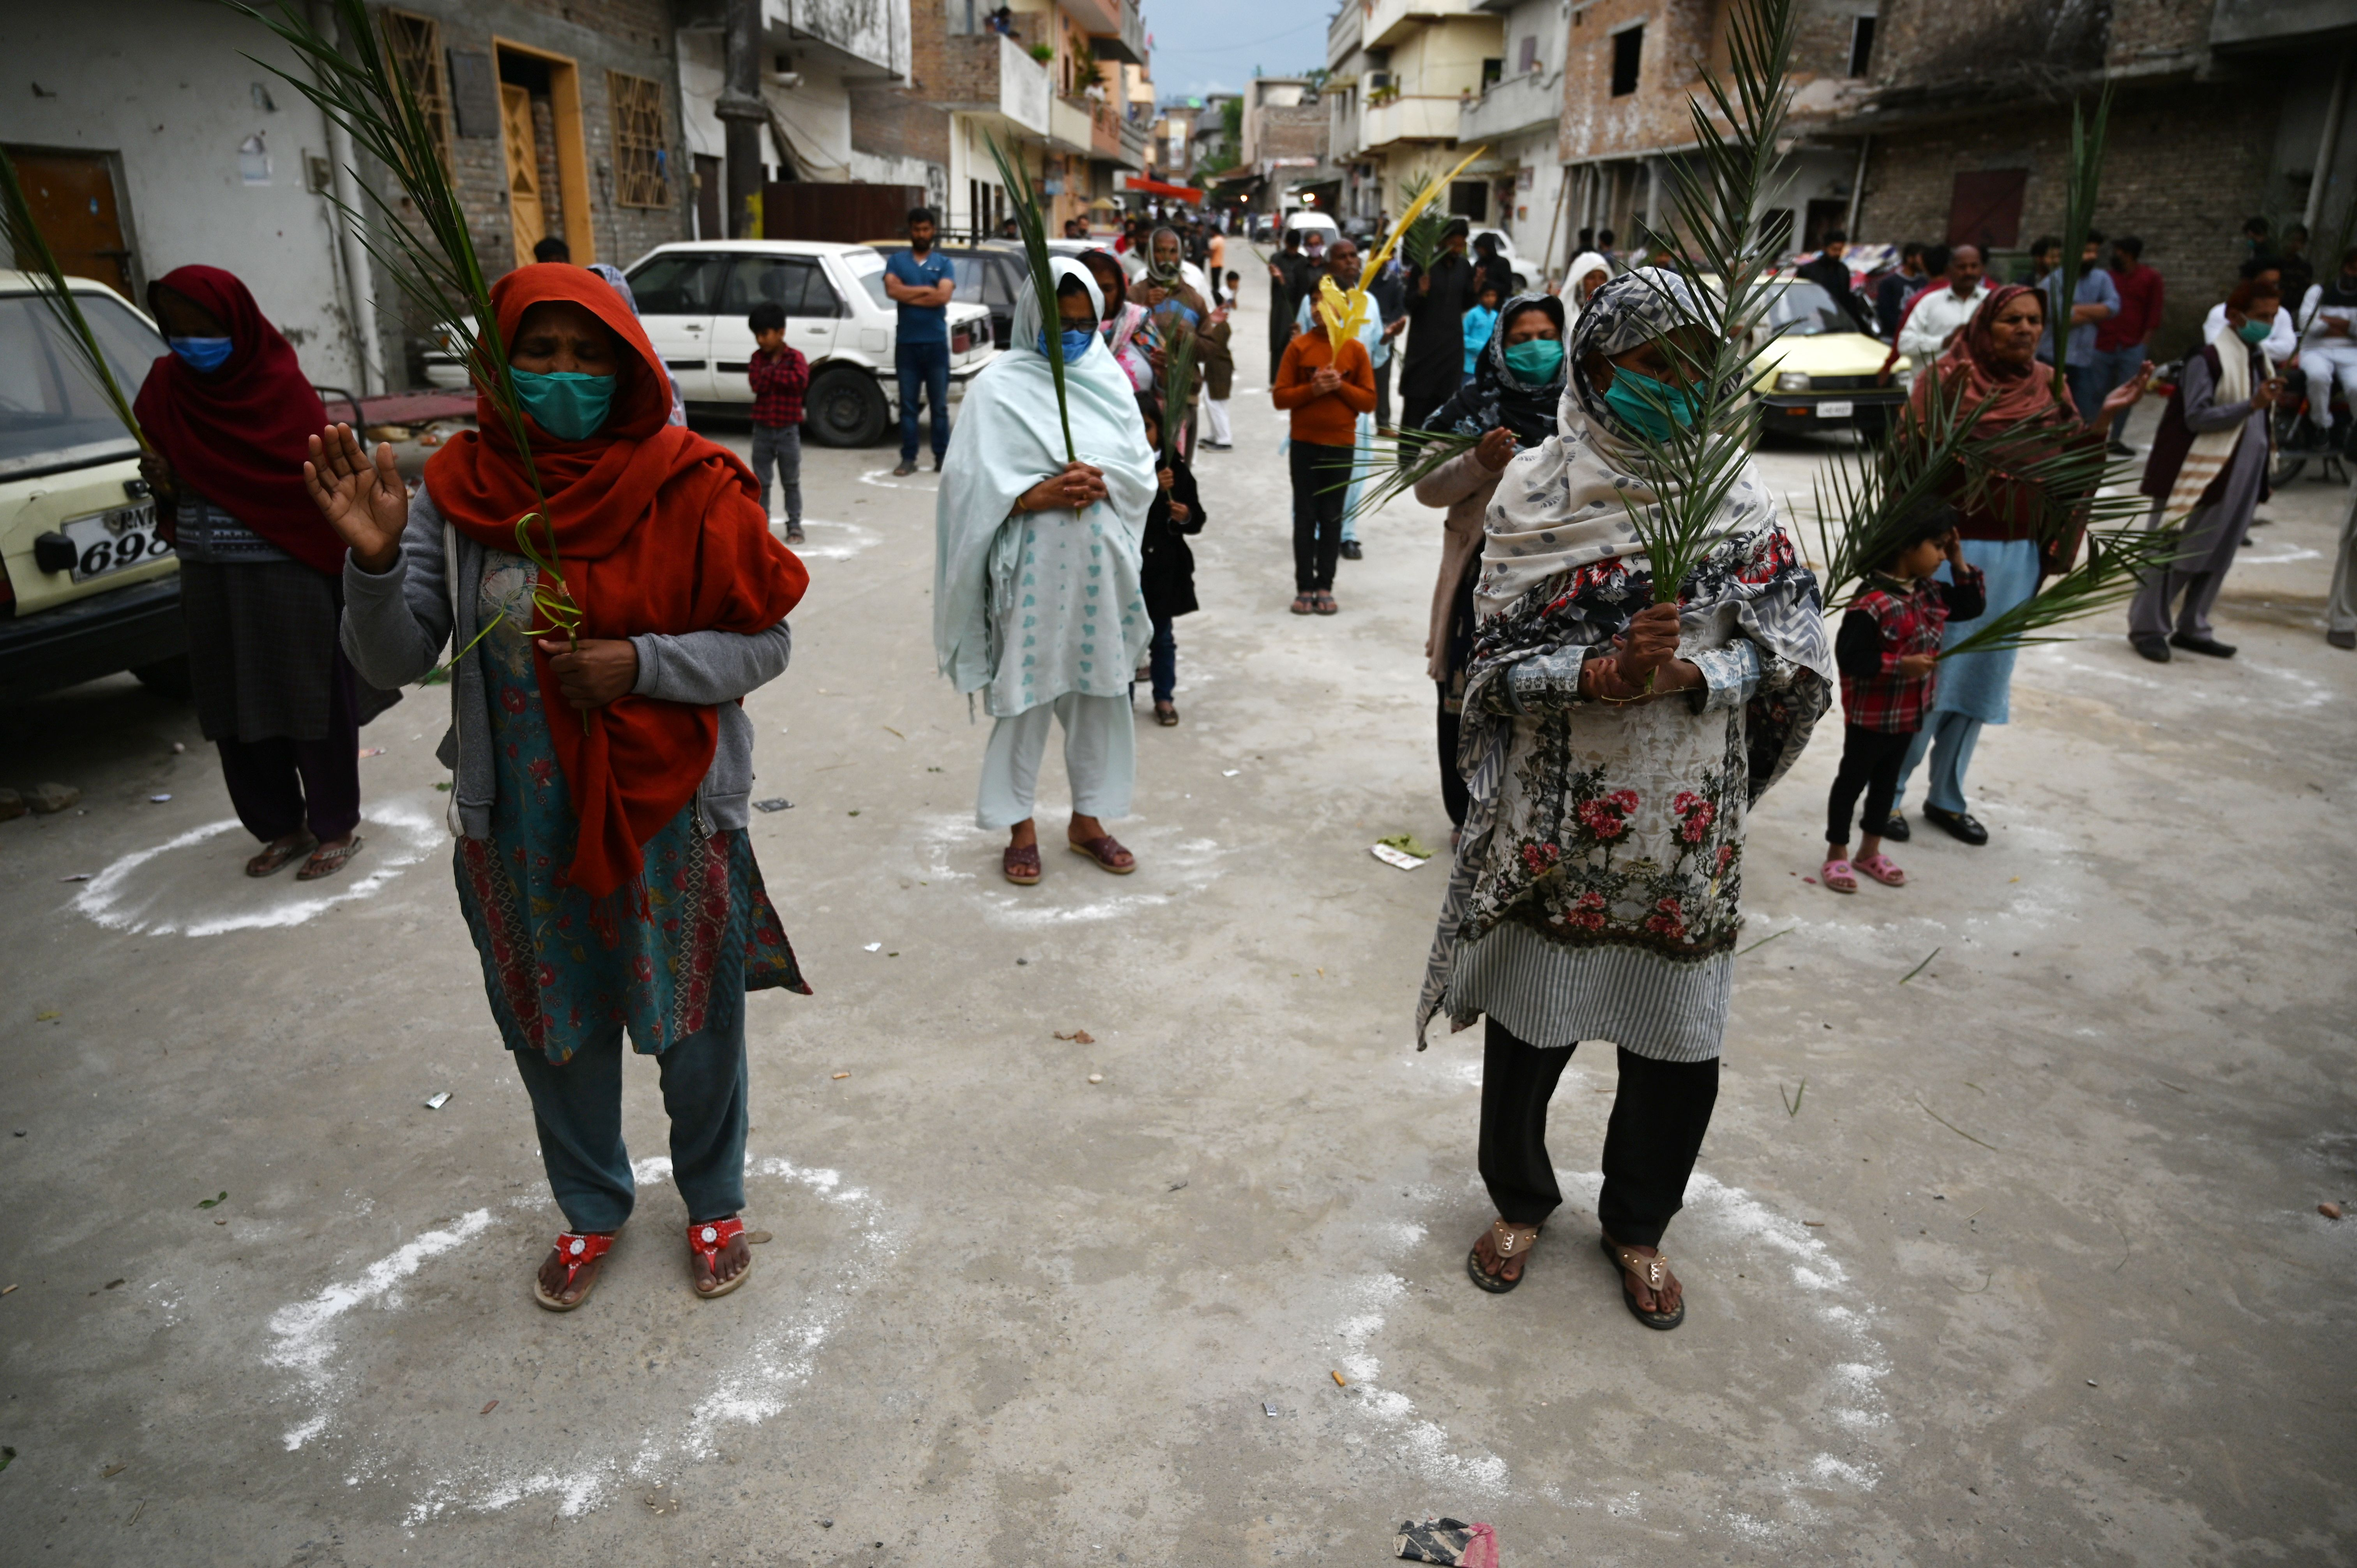 Christian devotees stand in circles marked on the ground to maintain social distancing as they hold palm branches to celebrate a Palm Sunday event at the Christian neighborhood during a government-imposed nationwide lockdown. (Photo by AAMIR QURESHI/AFP via Getty Images)